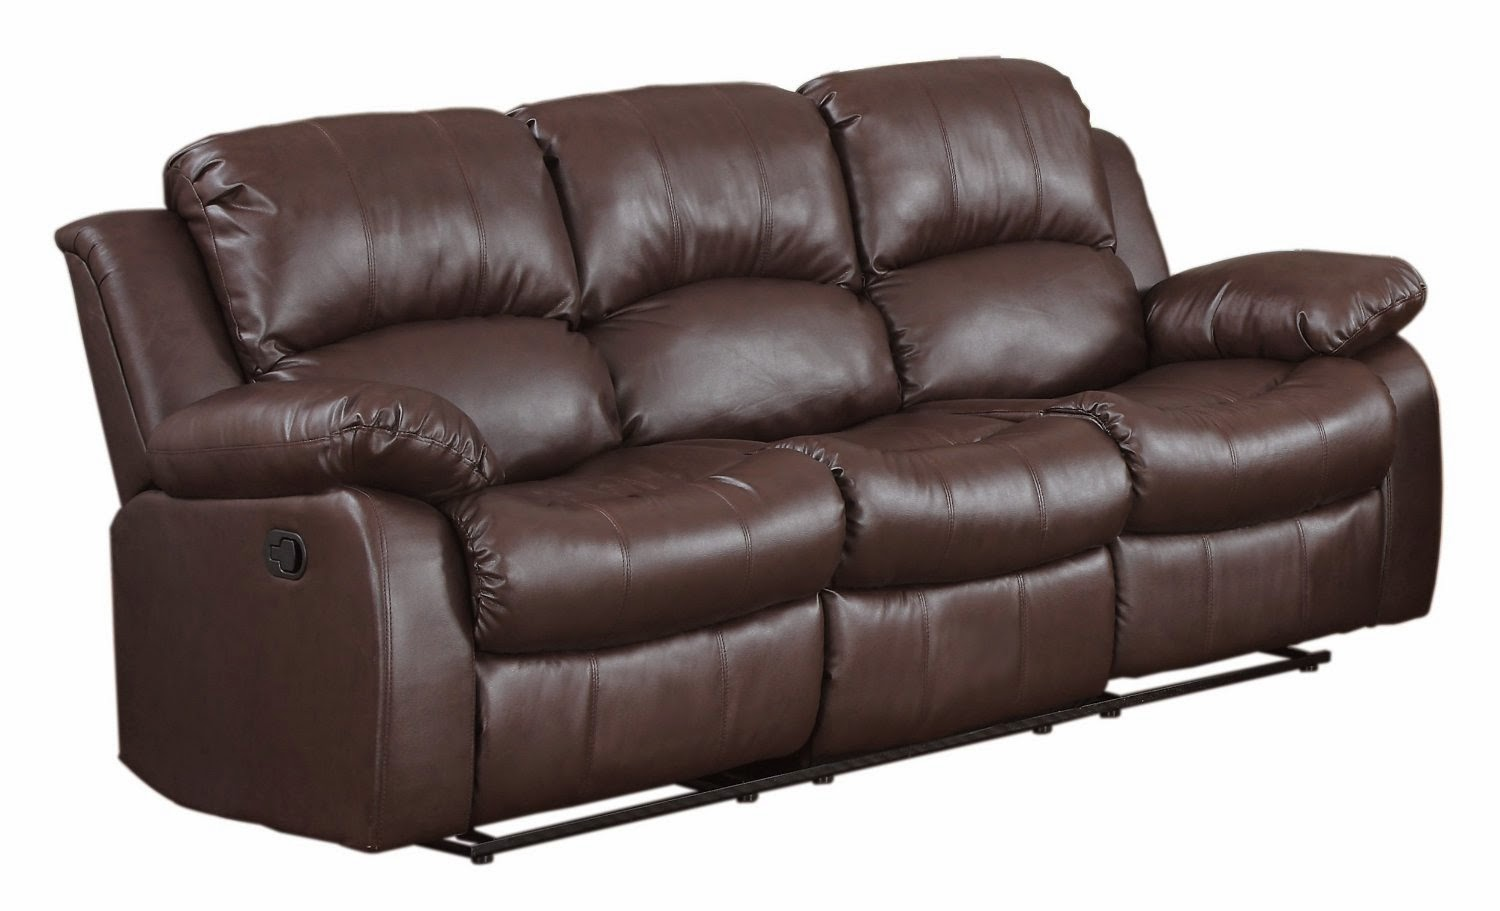 Cheap recliner sofas for sale sectional reclining sofas Reclining leather sofa and loveseat